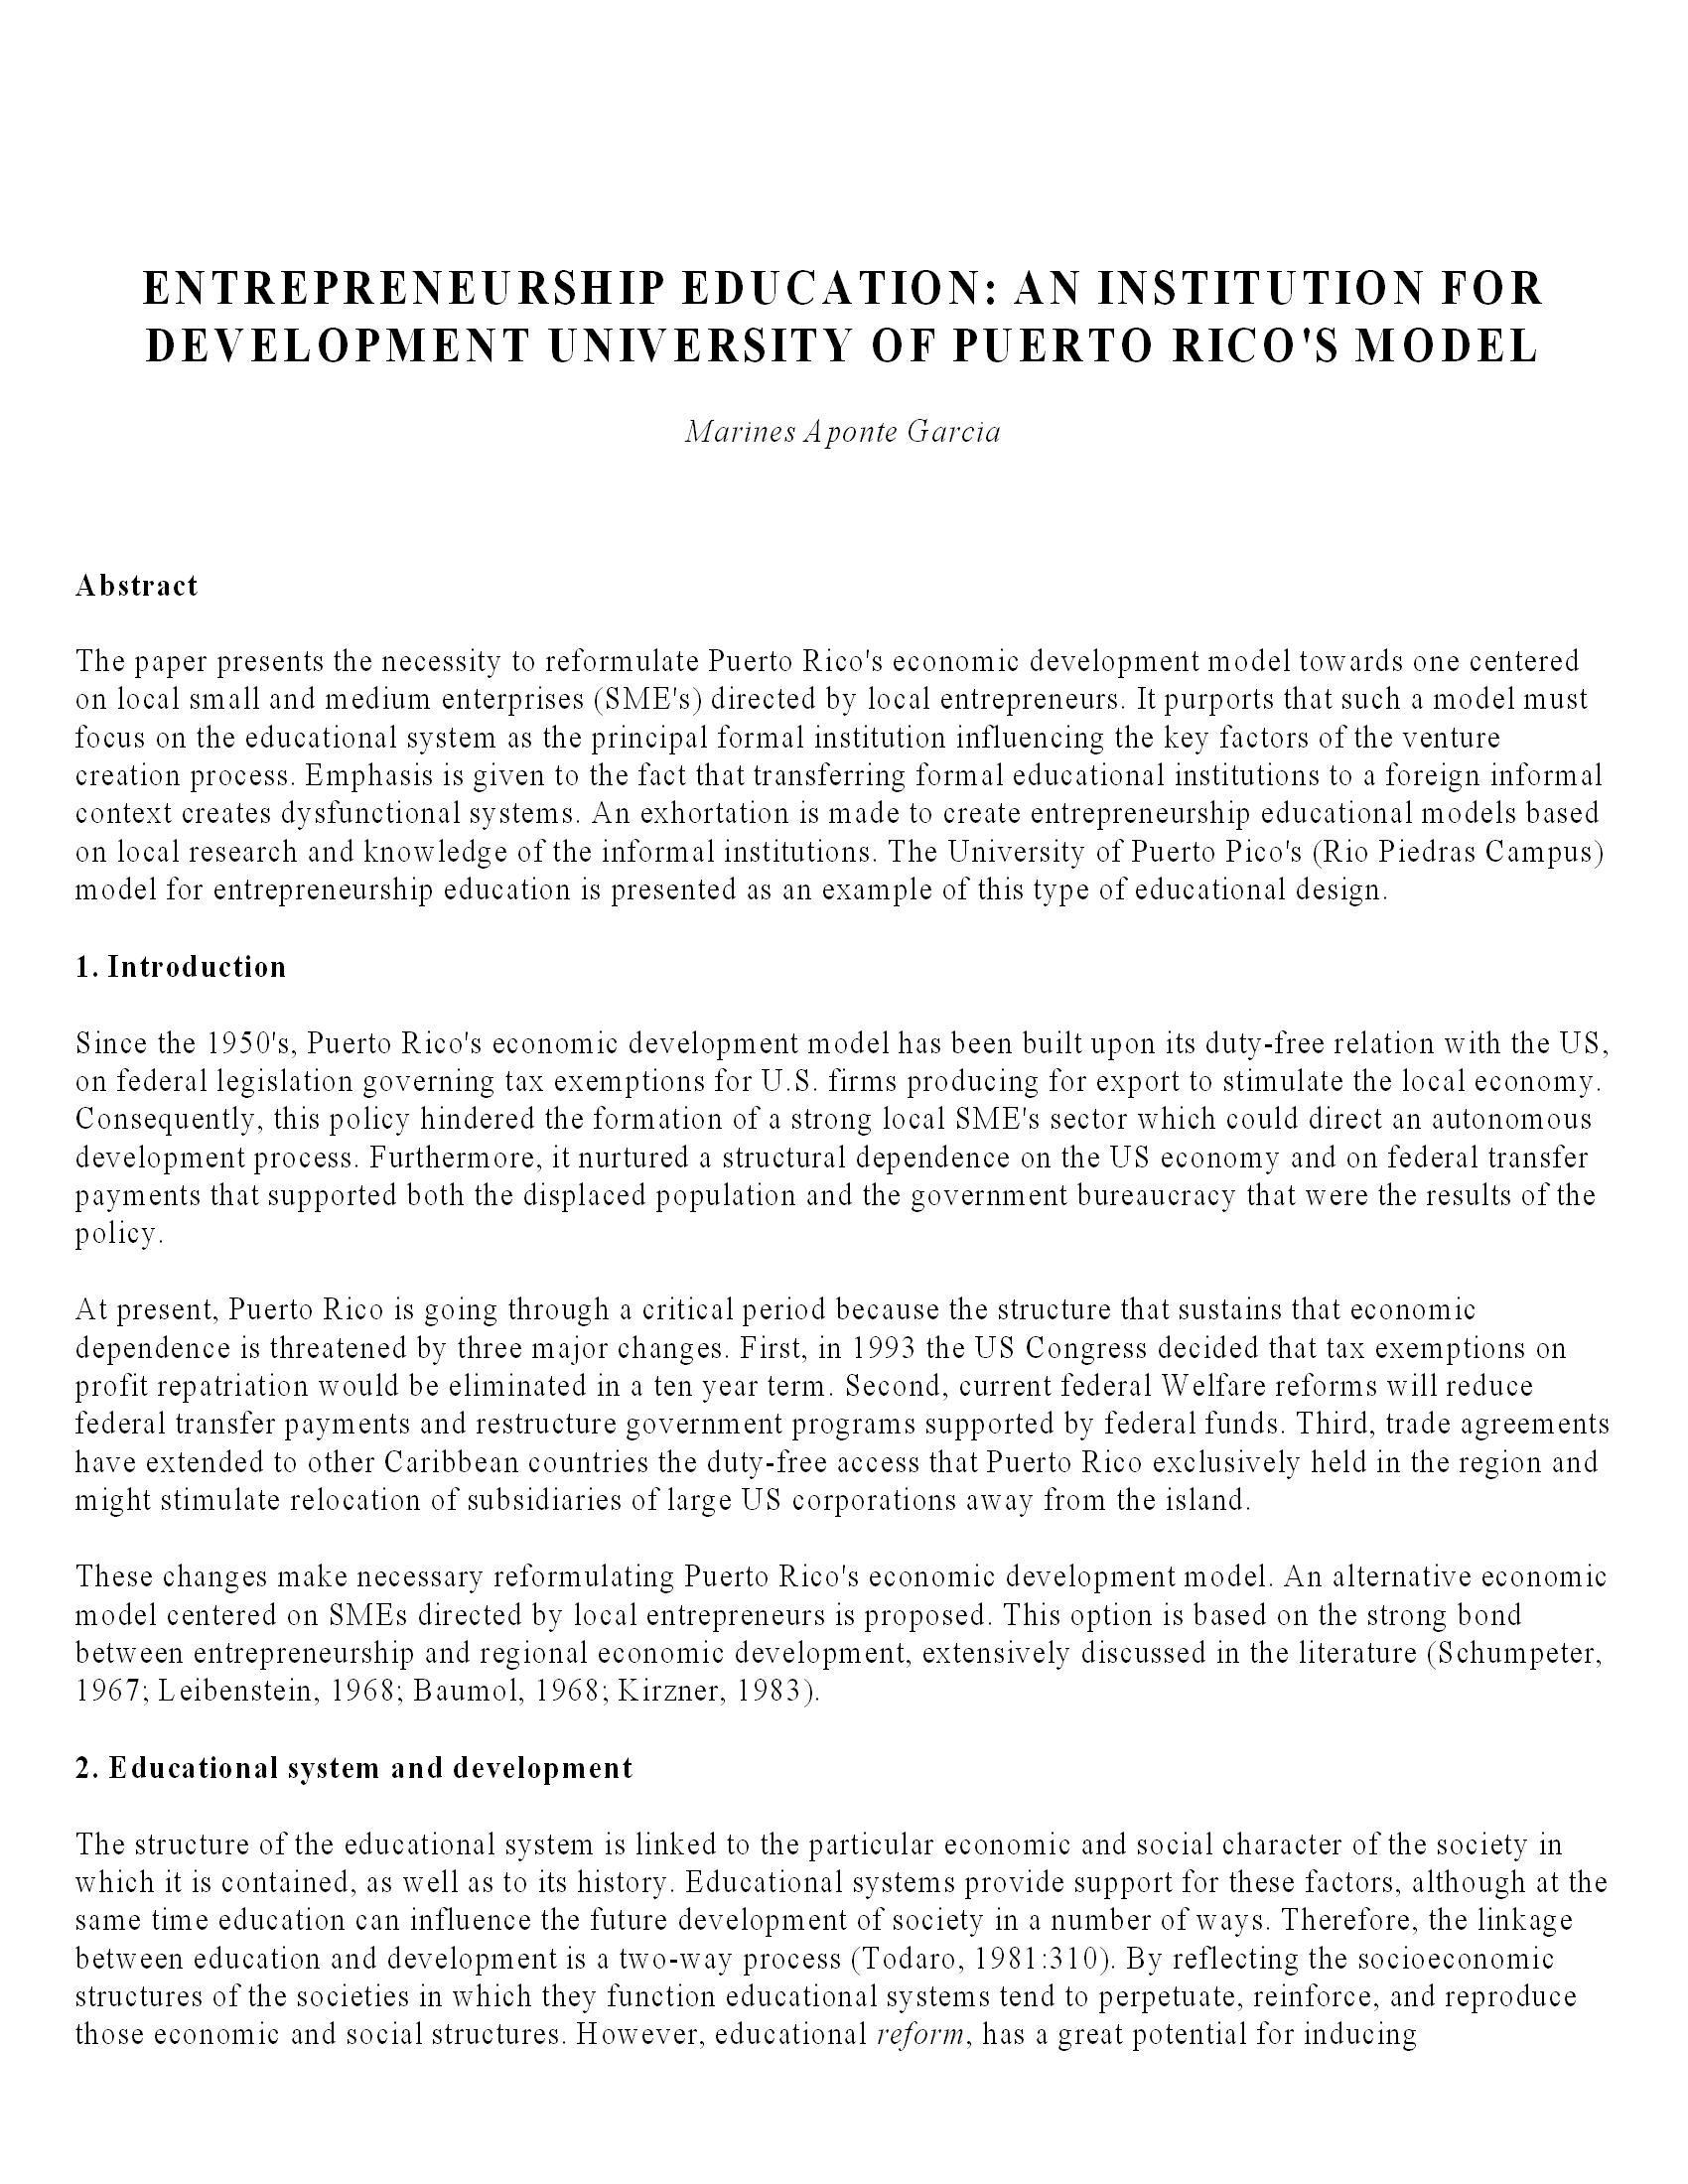 AN INSTITUTION FOR DEVELOPMENT UNIVERSITY OF PUERTO RICO S MODEL 7